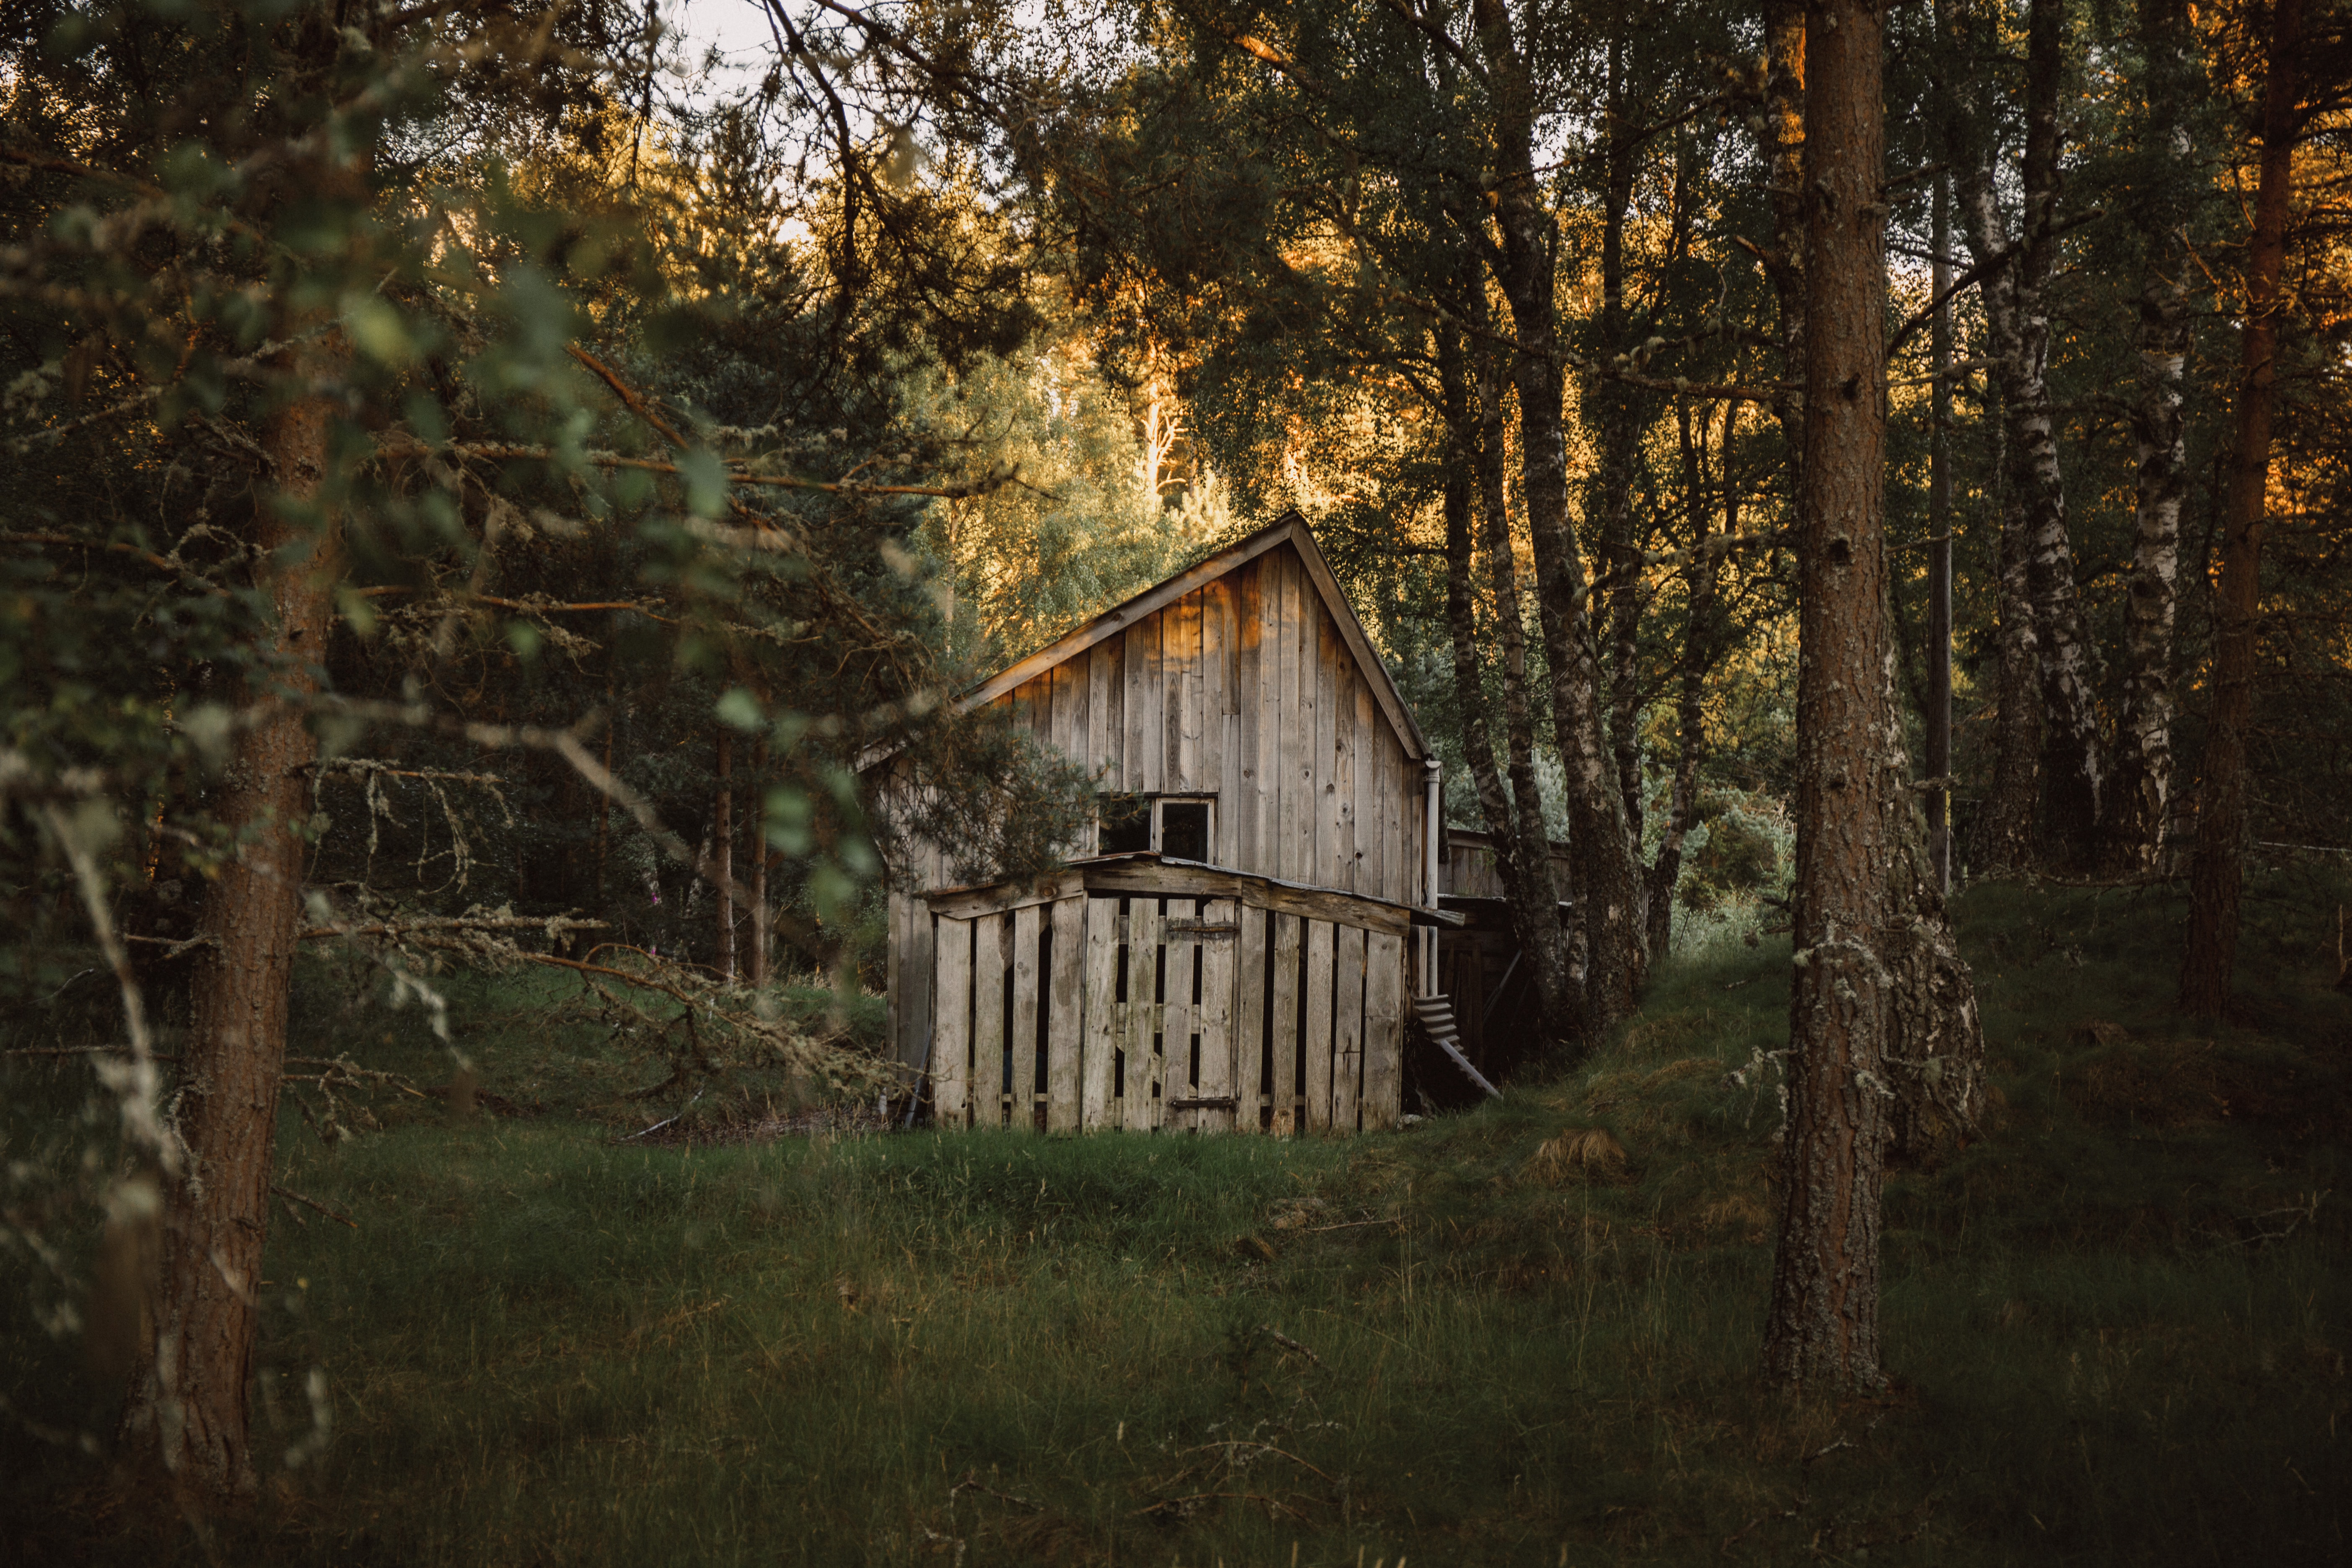 white wooden shed surrounded by trees